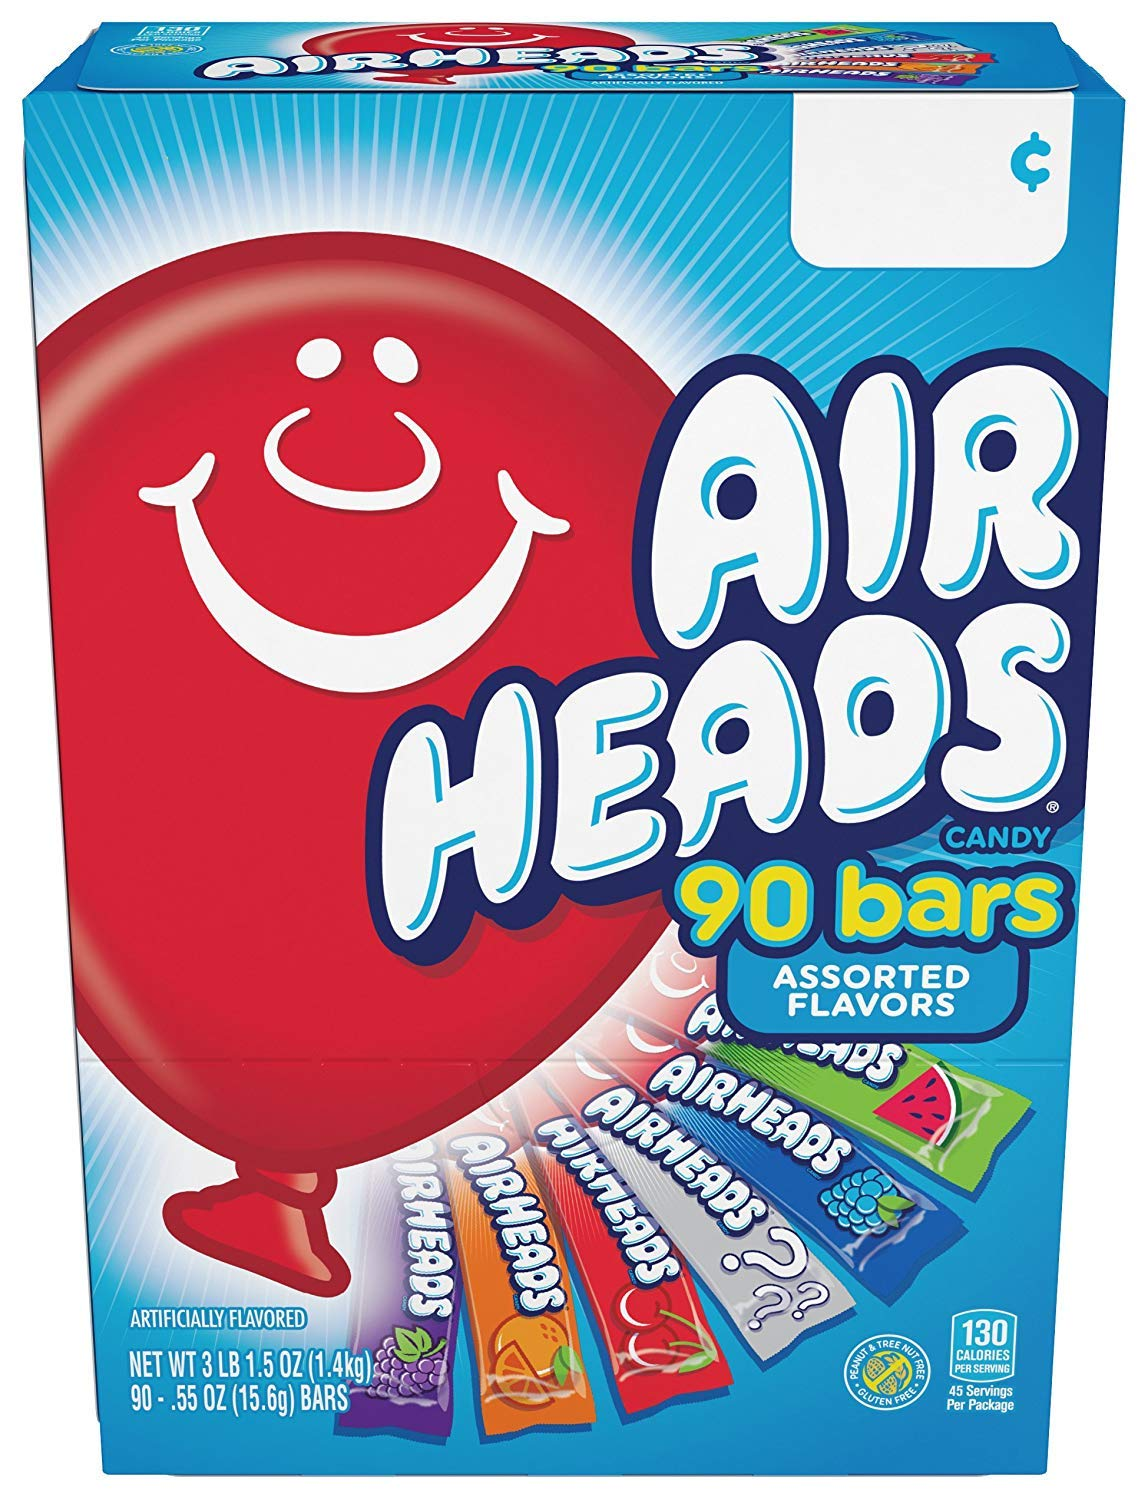 Airheads Bars, Chewy Fruit Candy, Easter Basket Stuffers, Variety Pack, Party, Non Melting, 90Count (Packaging May Vary), 5 Pack by Airheads (Image #4)